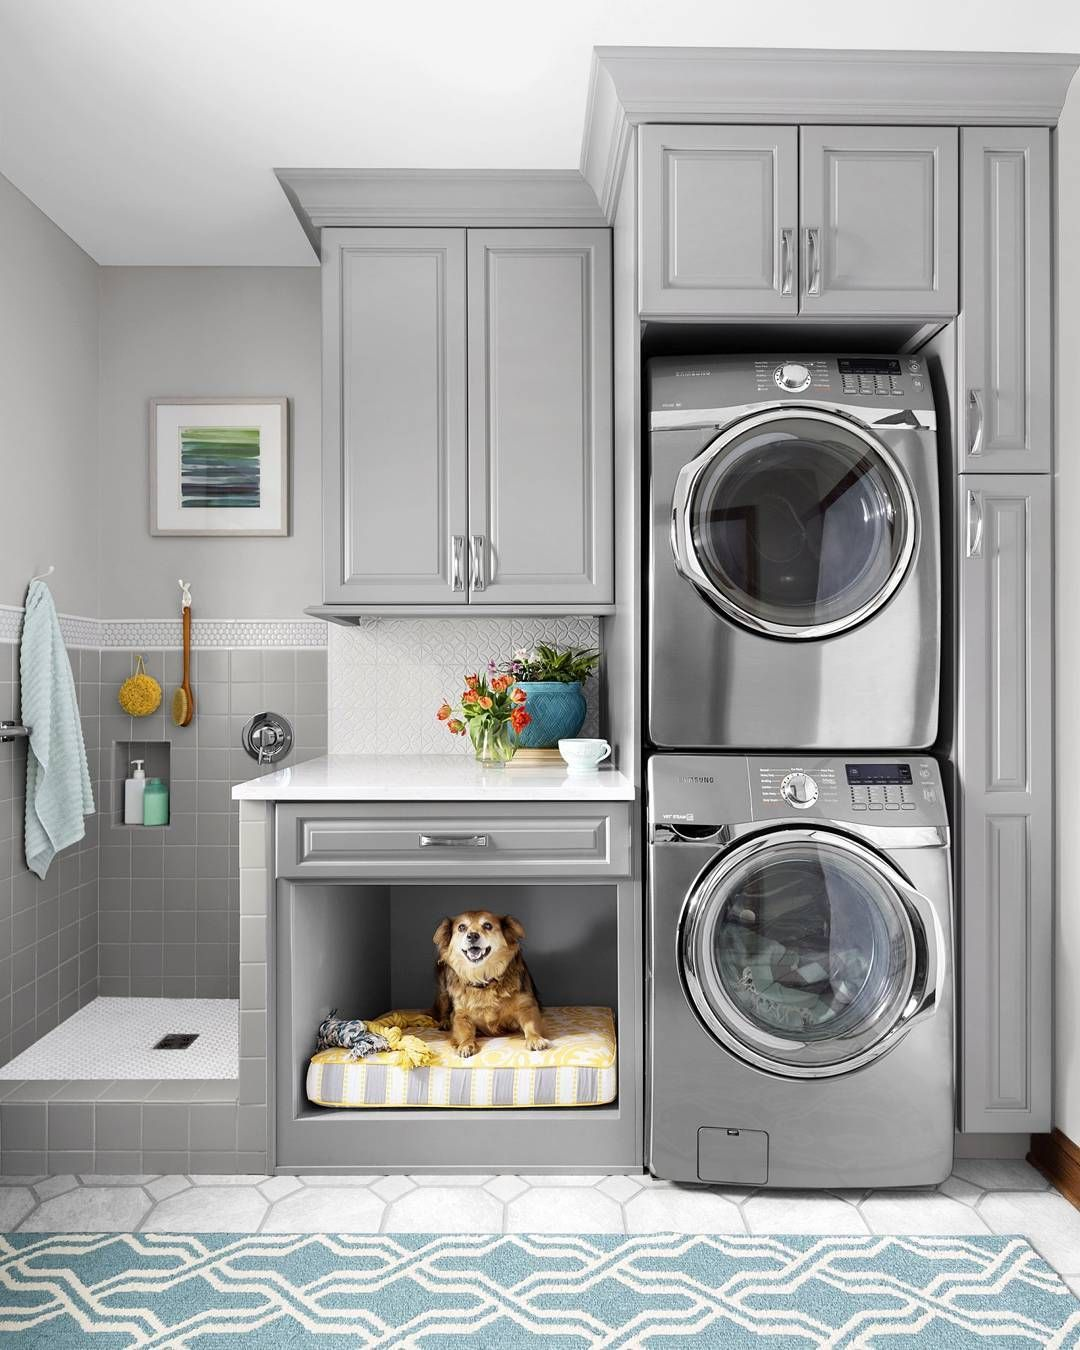 Laundry room pet bed shower 8 39 6 x 6 39 6 laundry for 6x6 room design